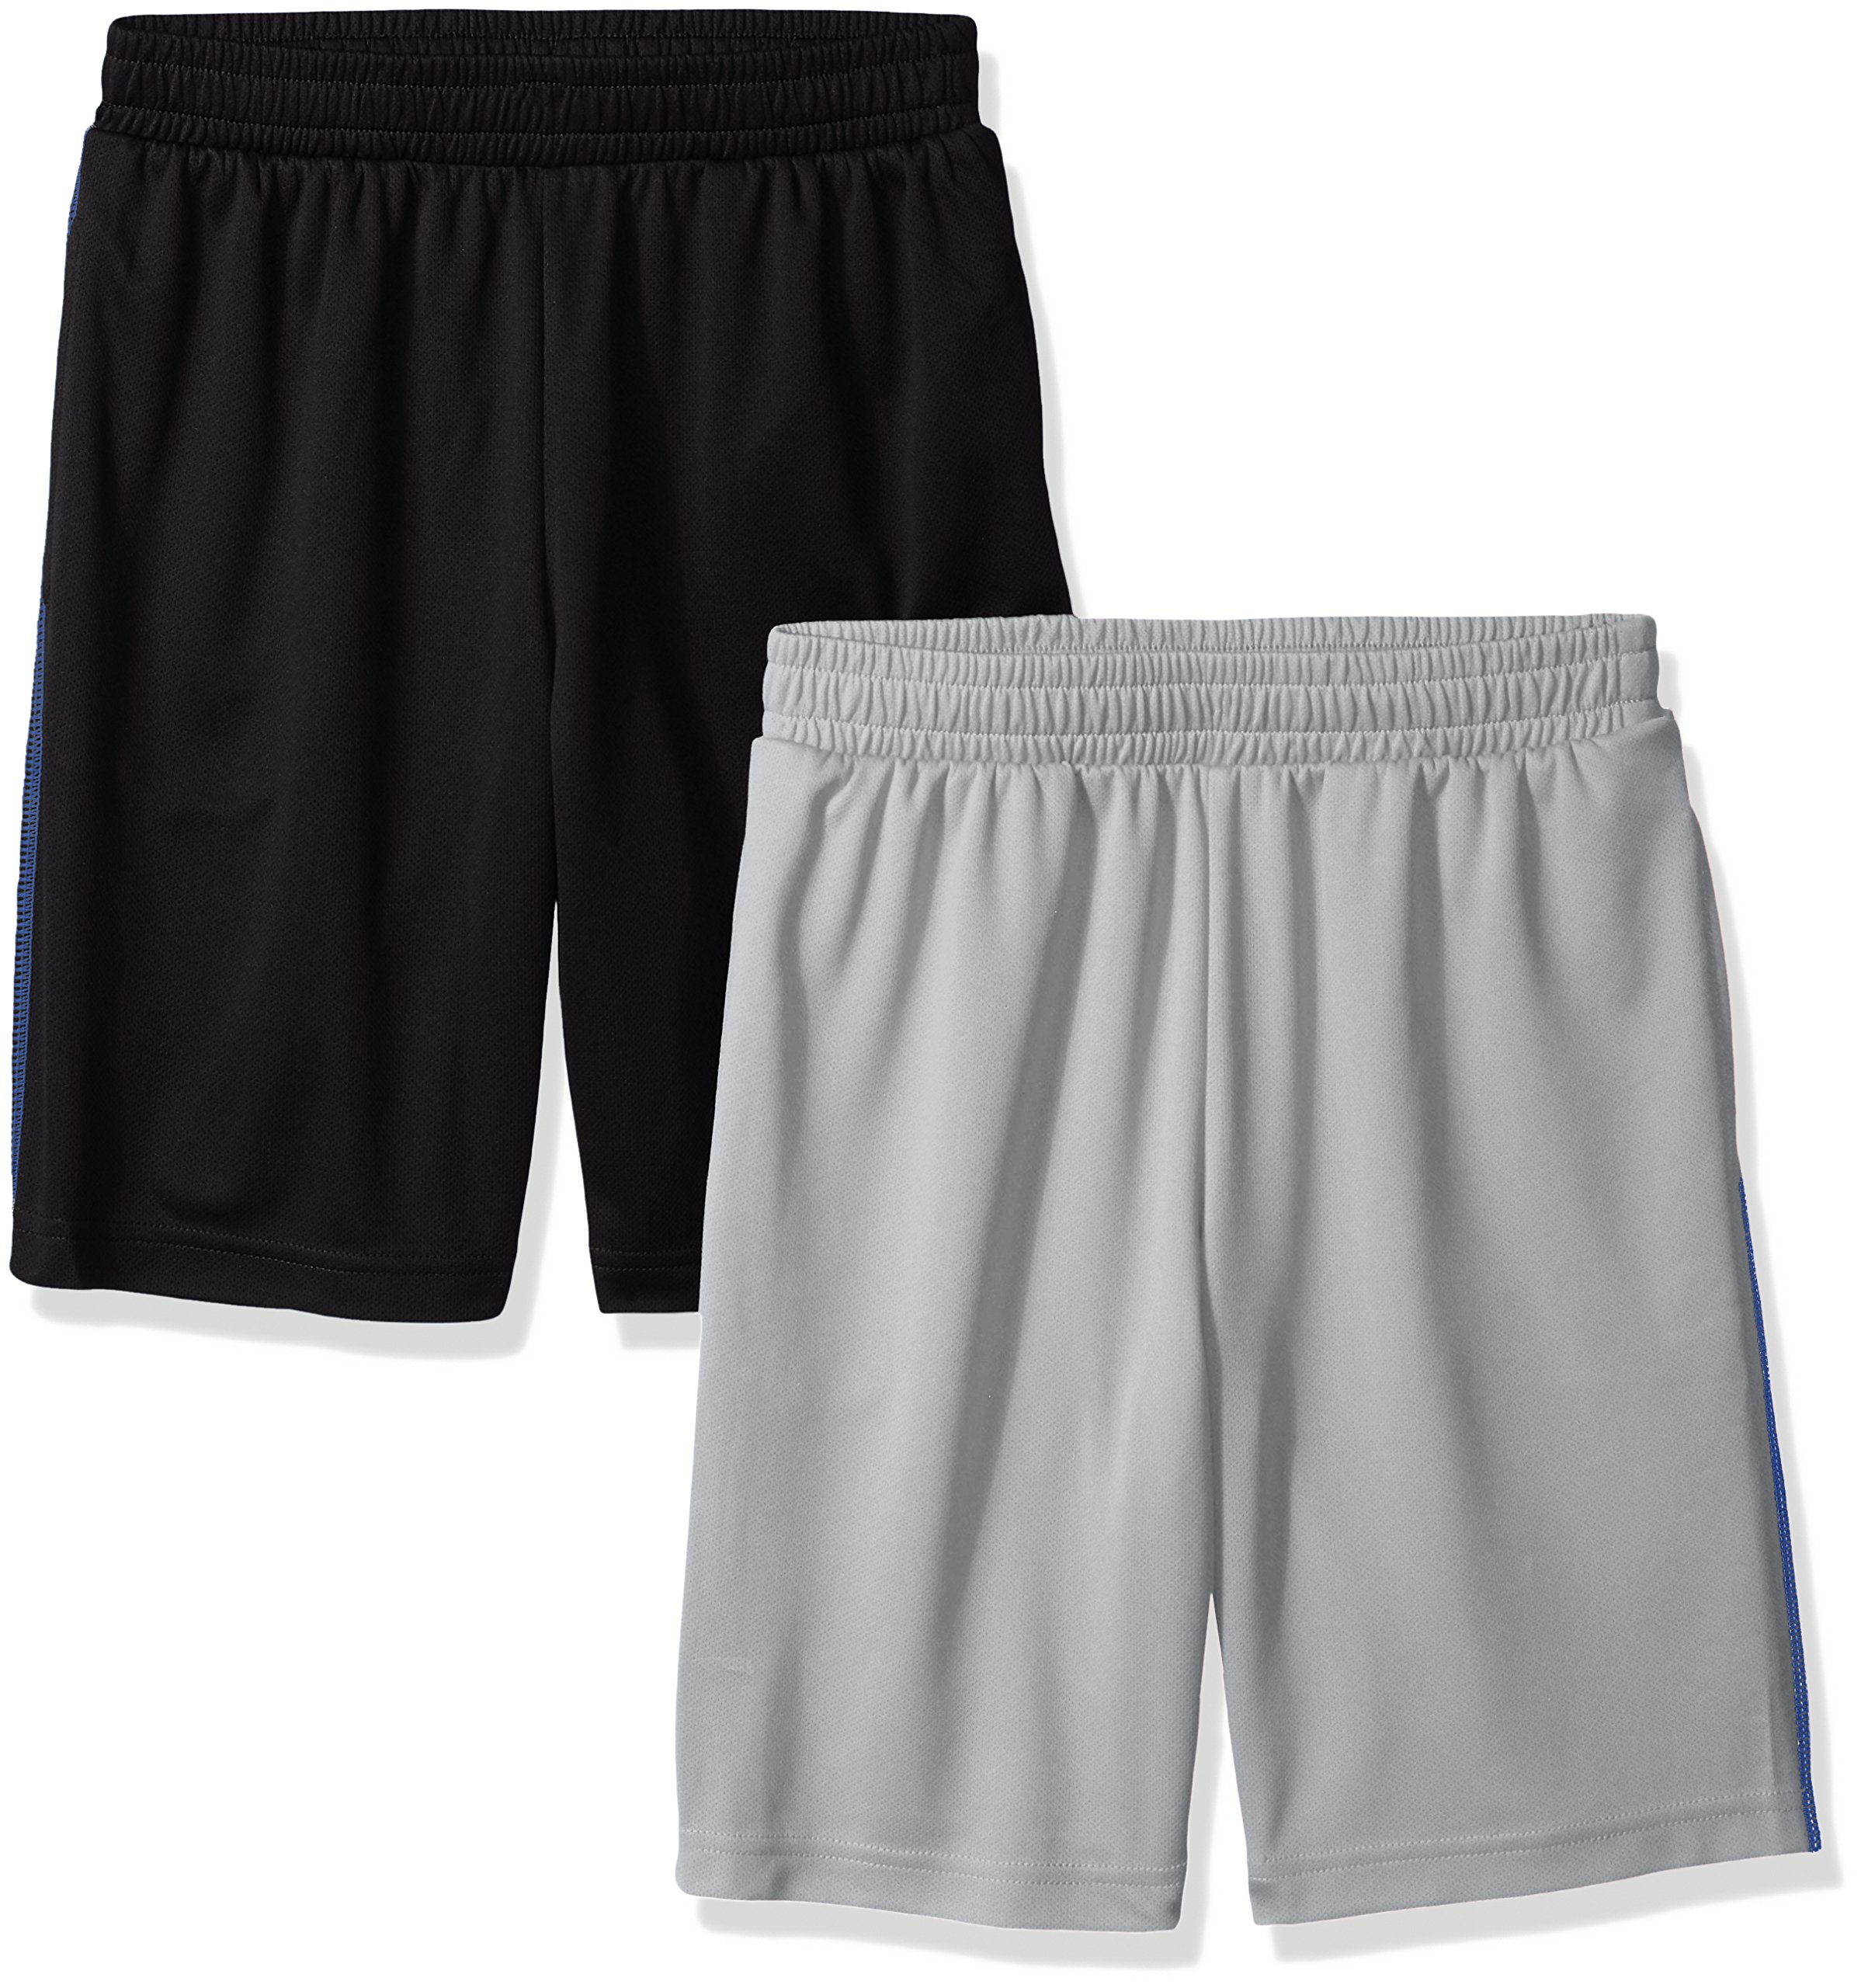 Amazon Essentials Big Boys' 2-Pack Mesh Short, Black/Light Grey, Medium